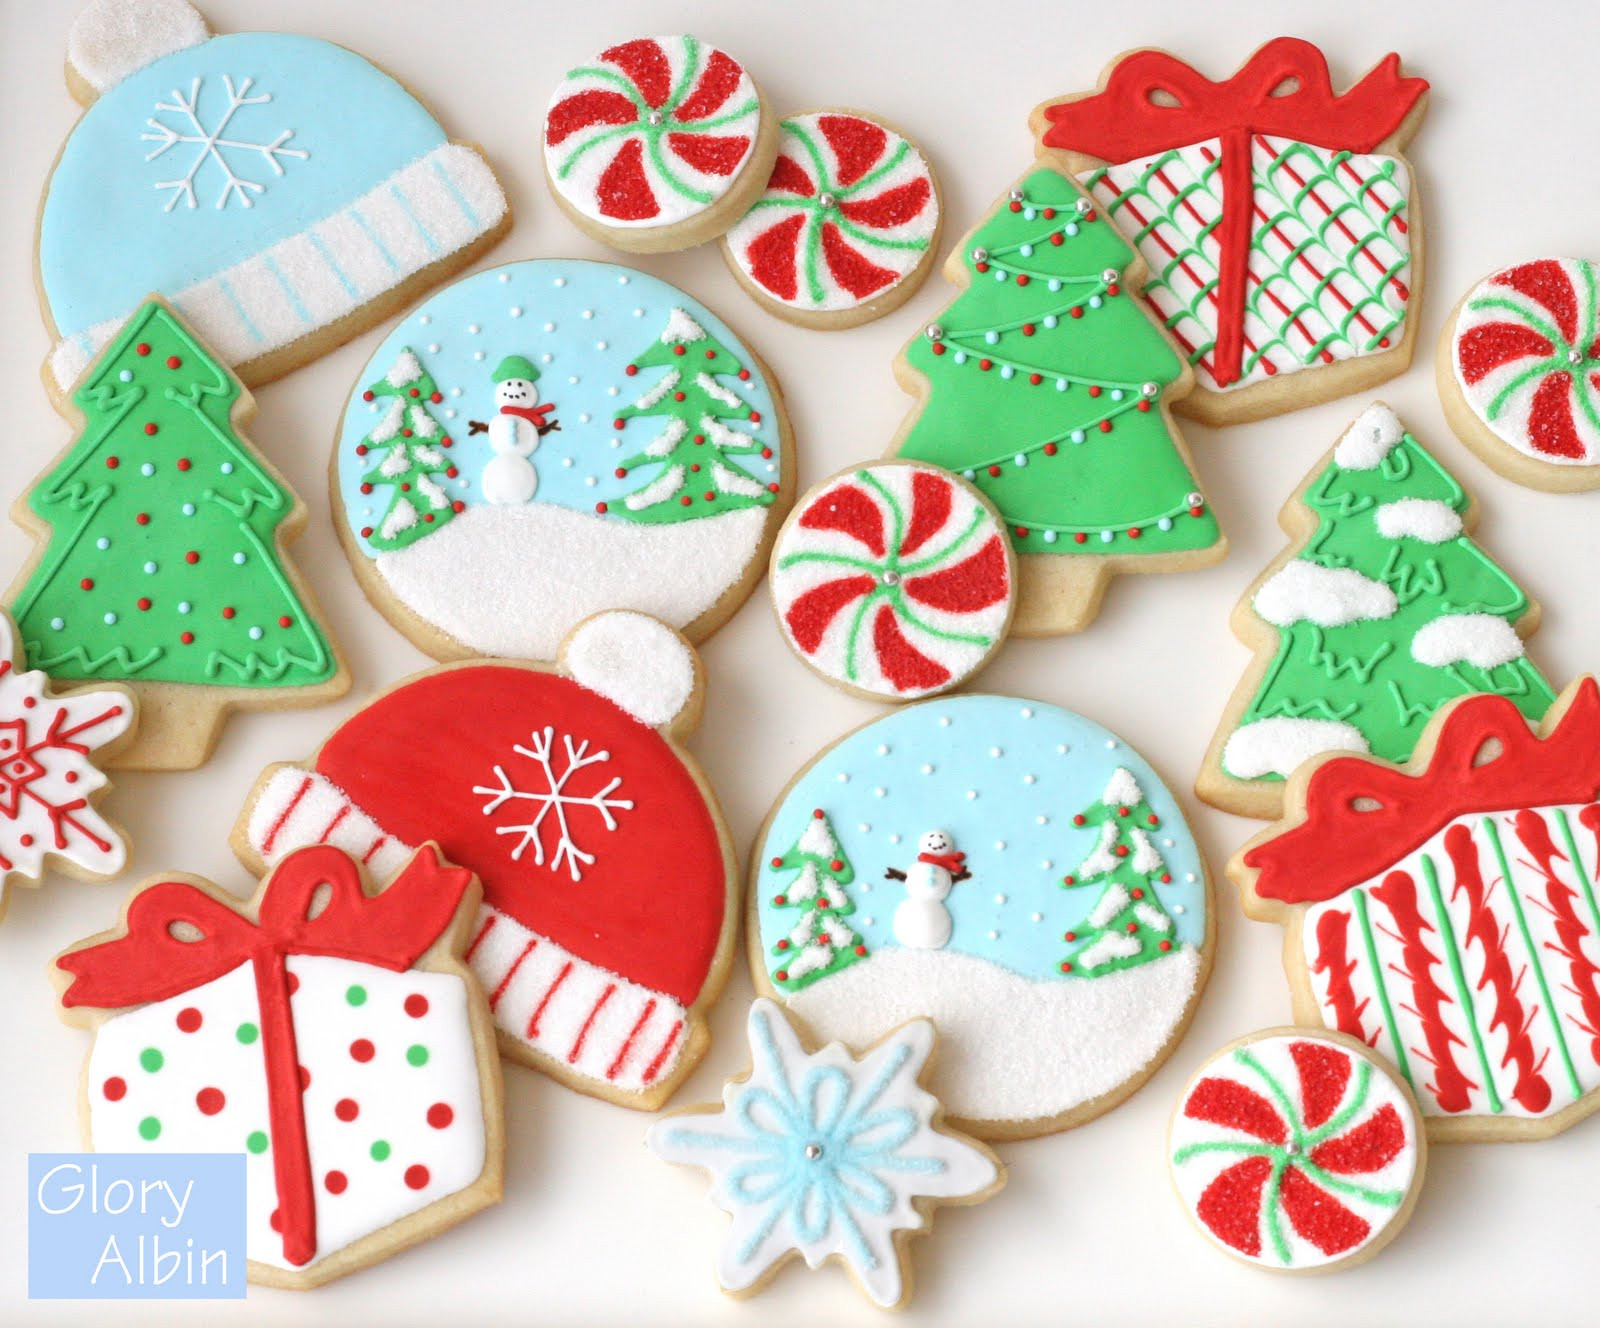 Royal Icing Christmas Cookie  Decorating Sugar Cookies with Royal Icing – Glorious Treats